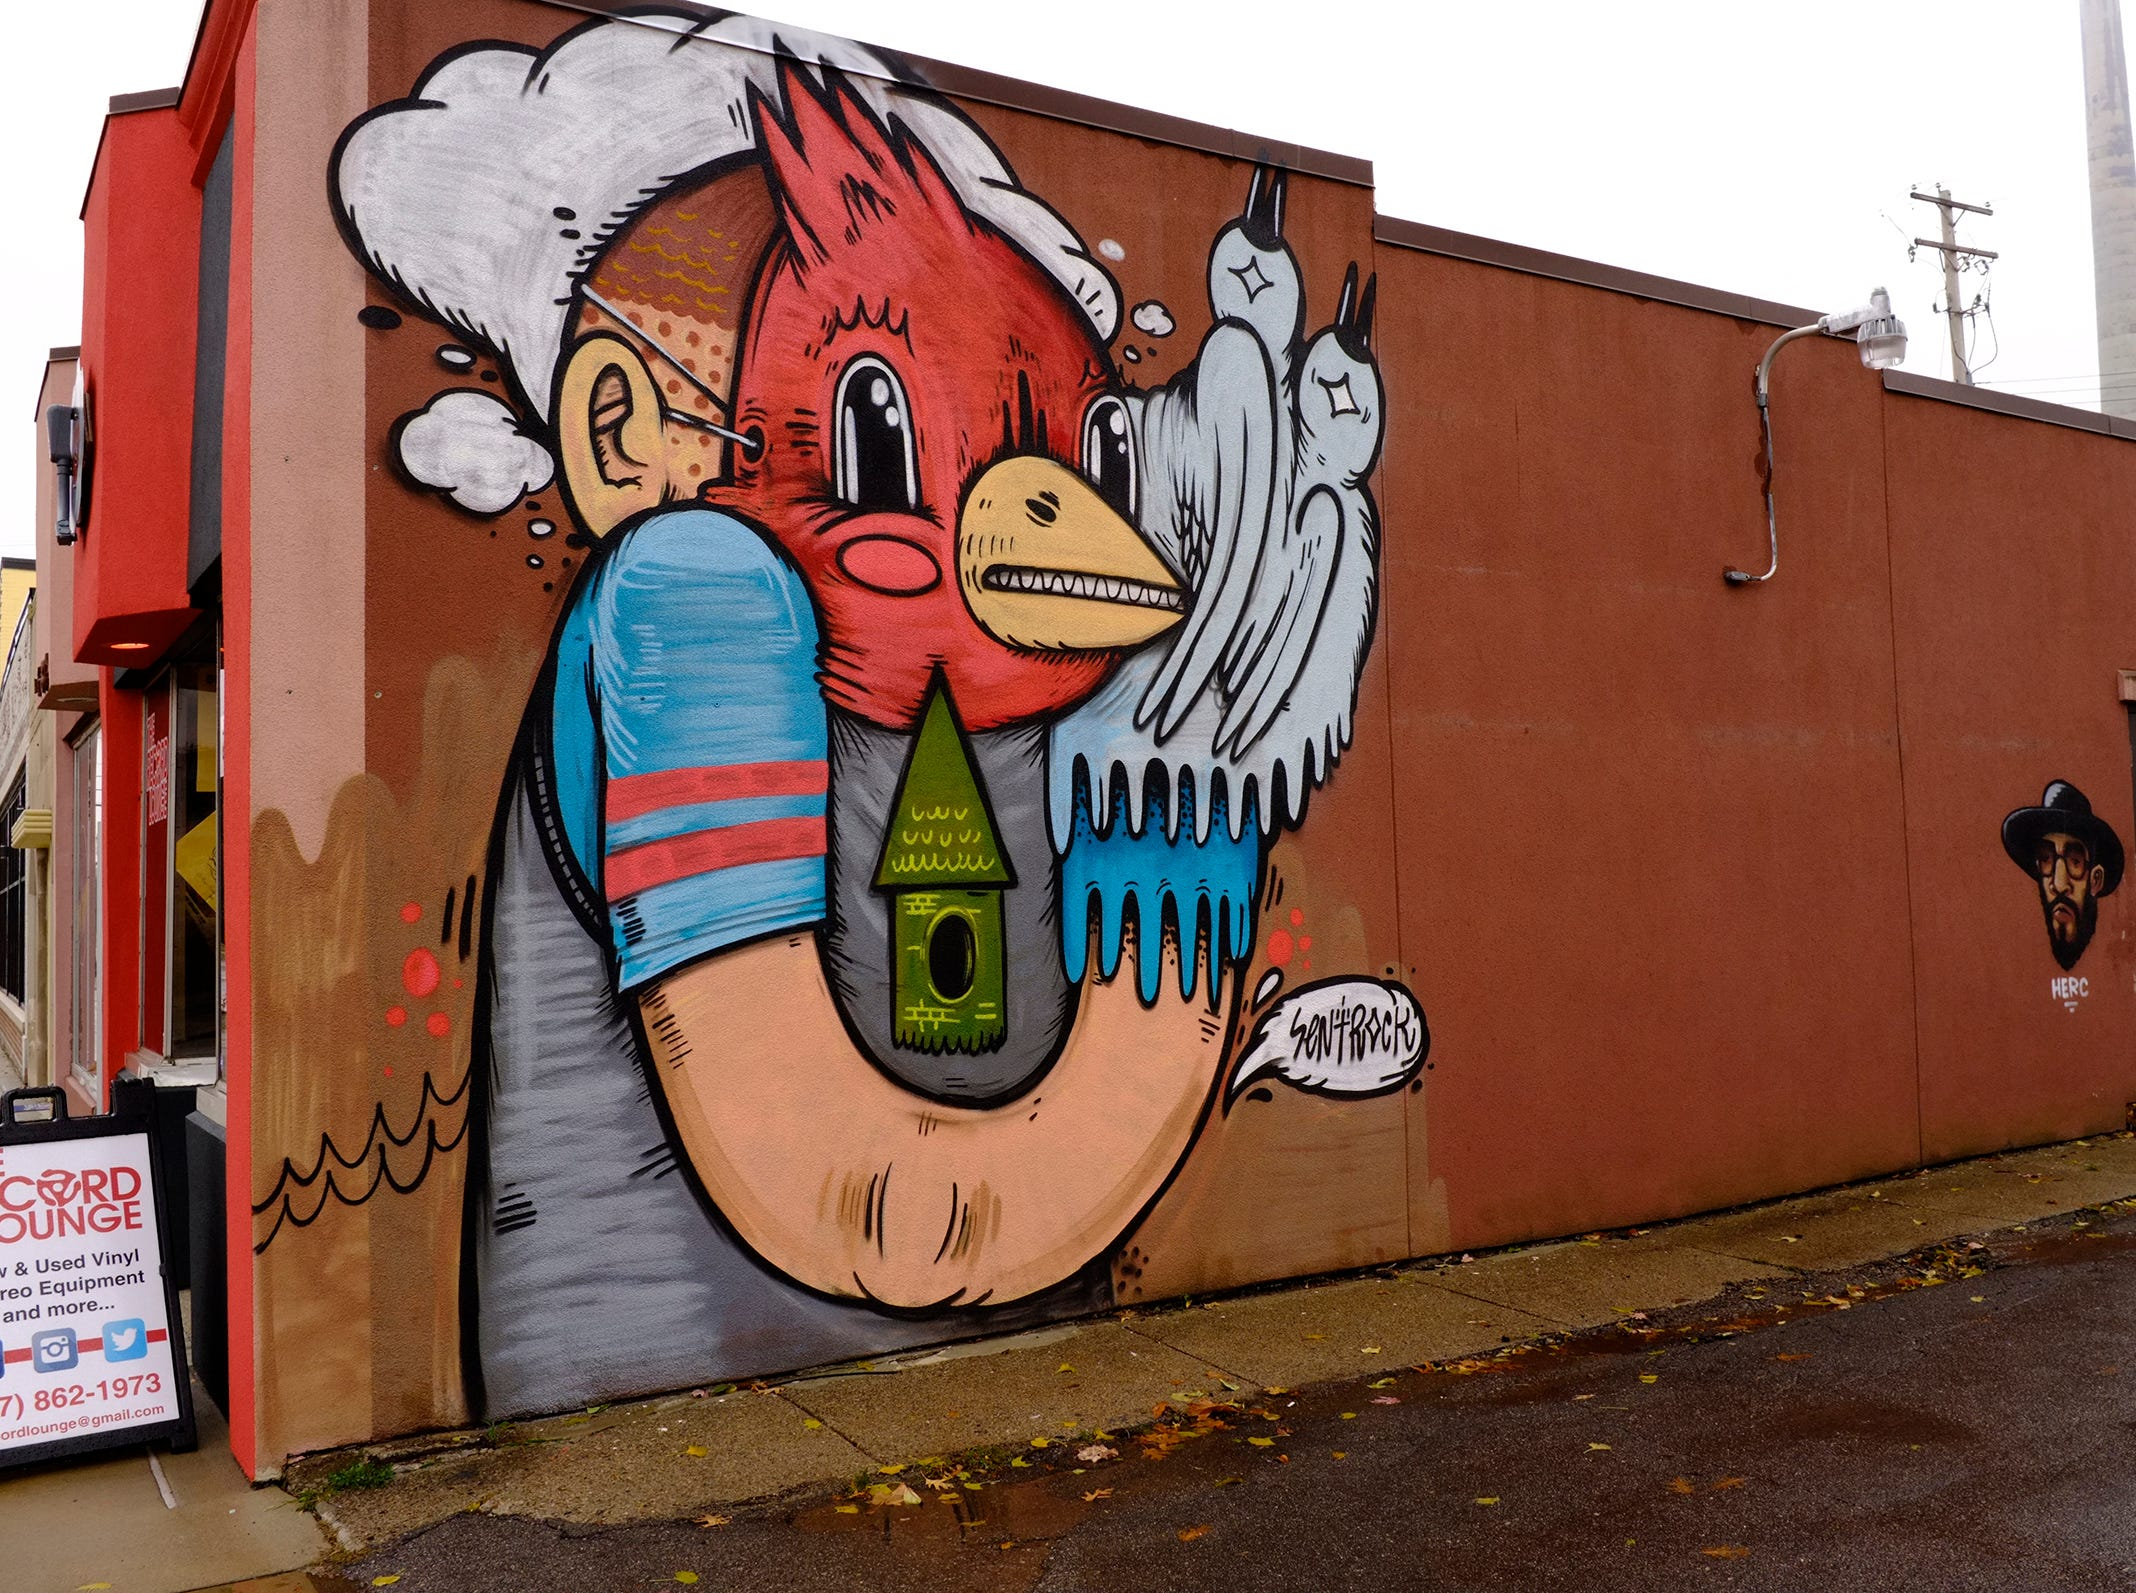 A signature mural by Sentrock out of Chicago is painted on the side of The Record Lounge in Lansing's Reo Town.